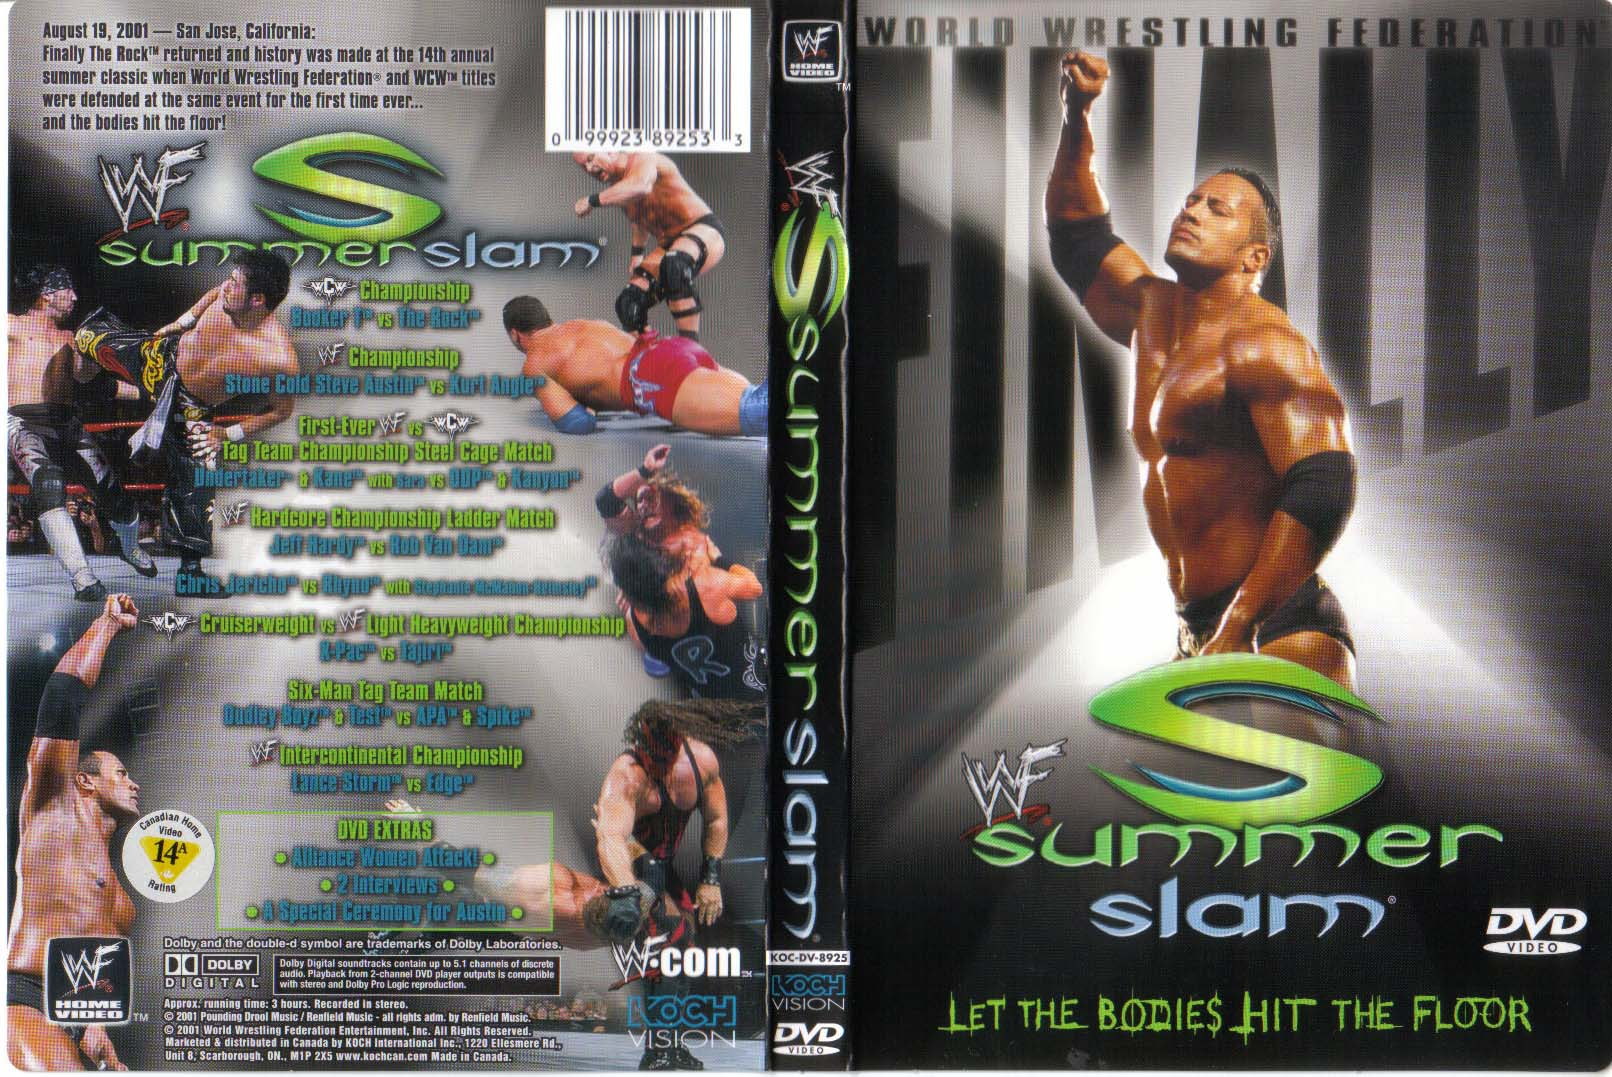 Summerslam2001DVD